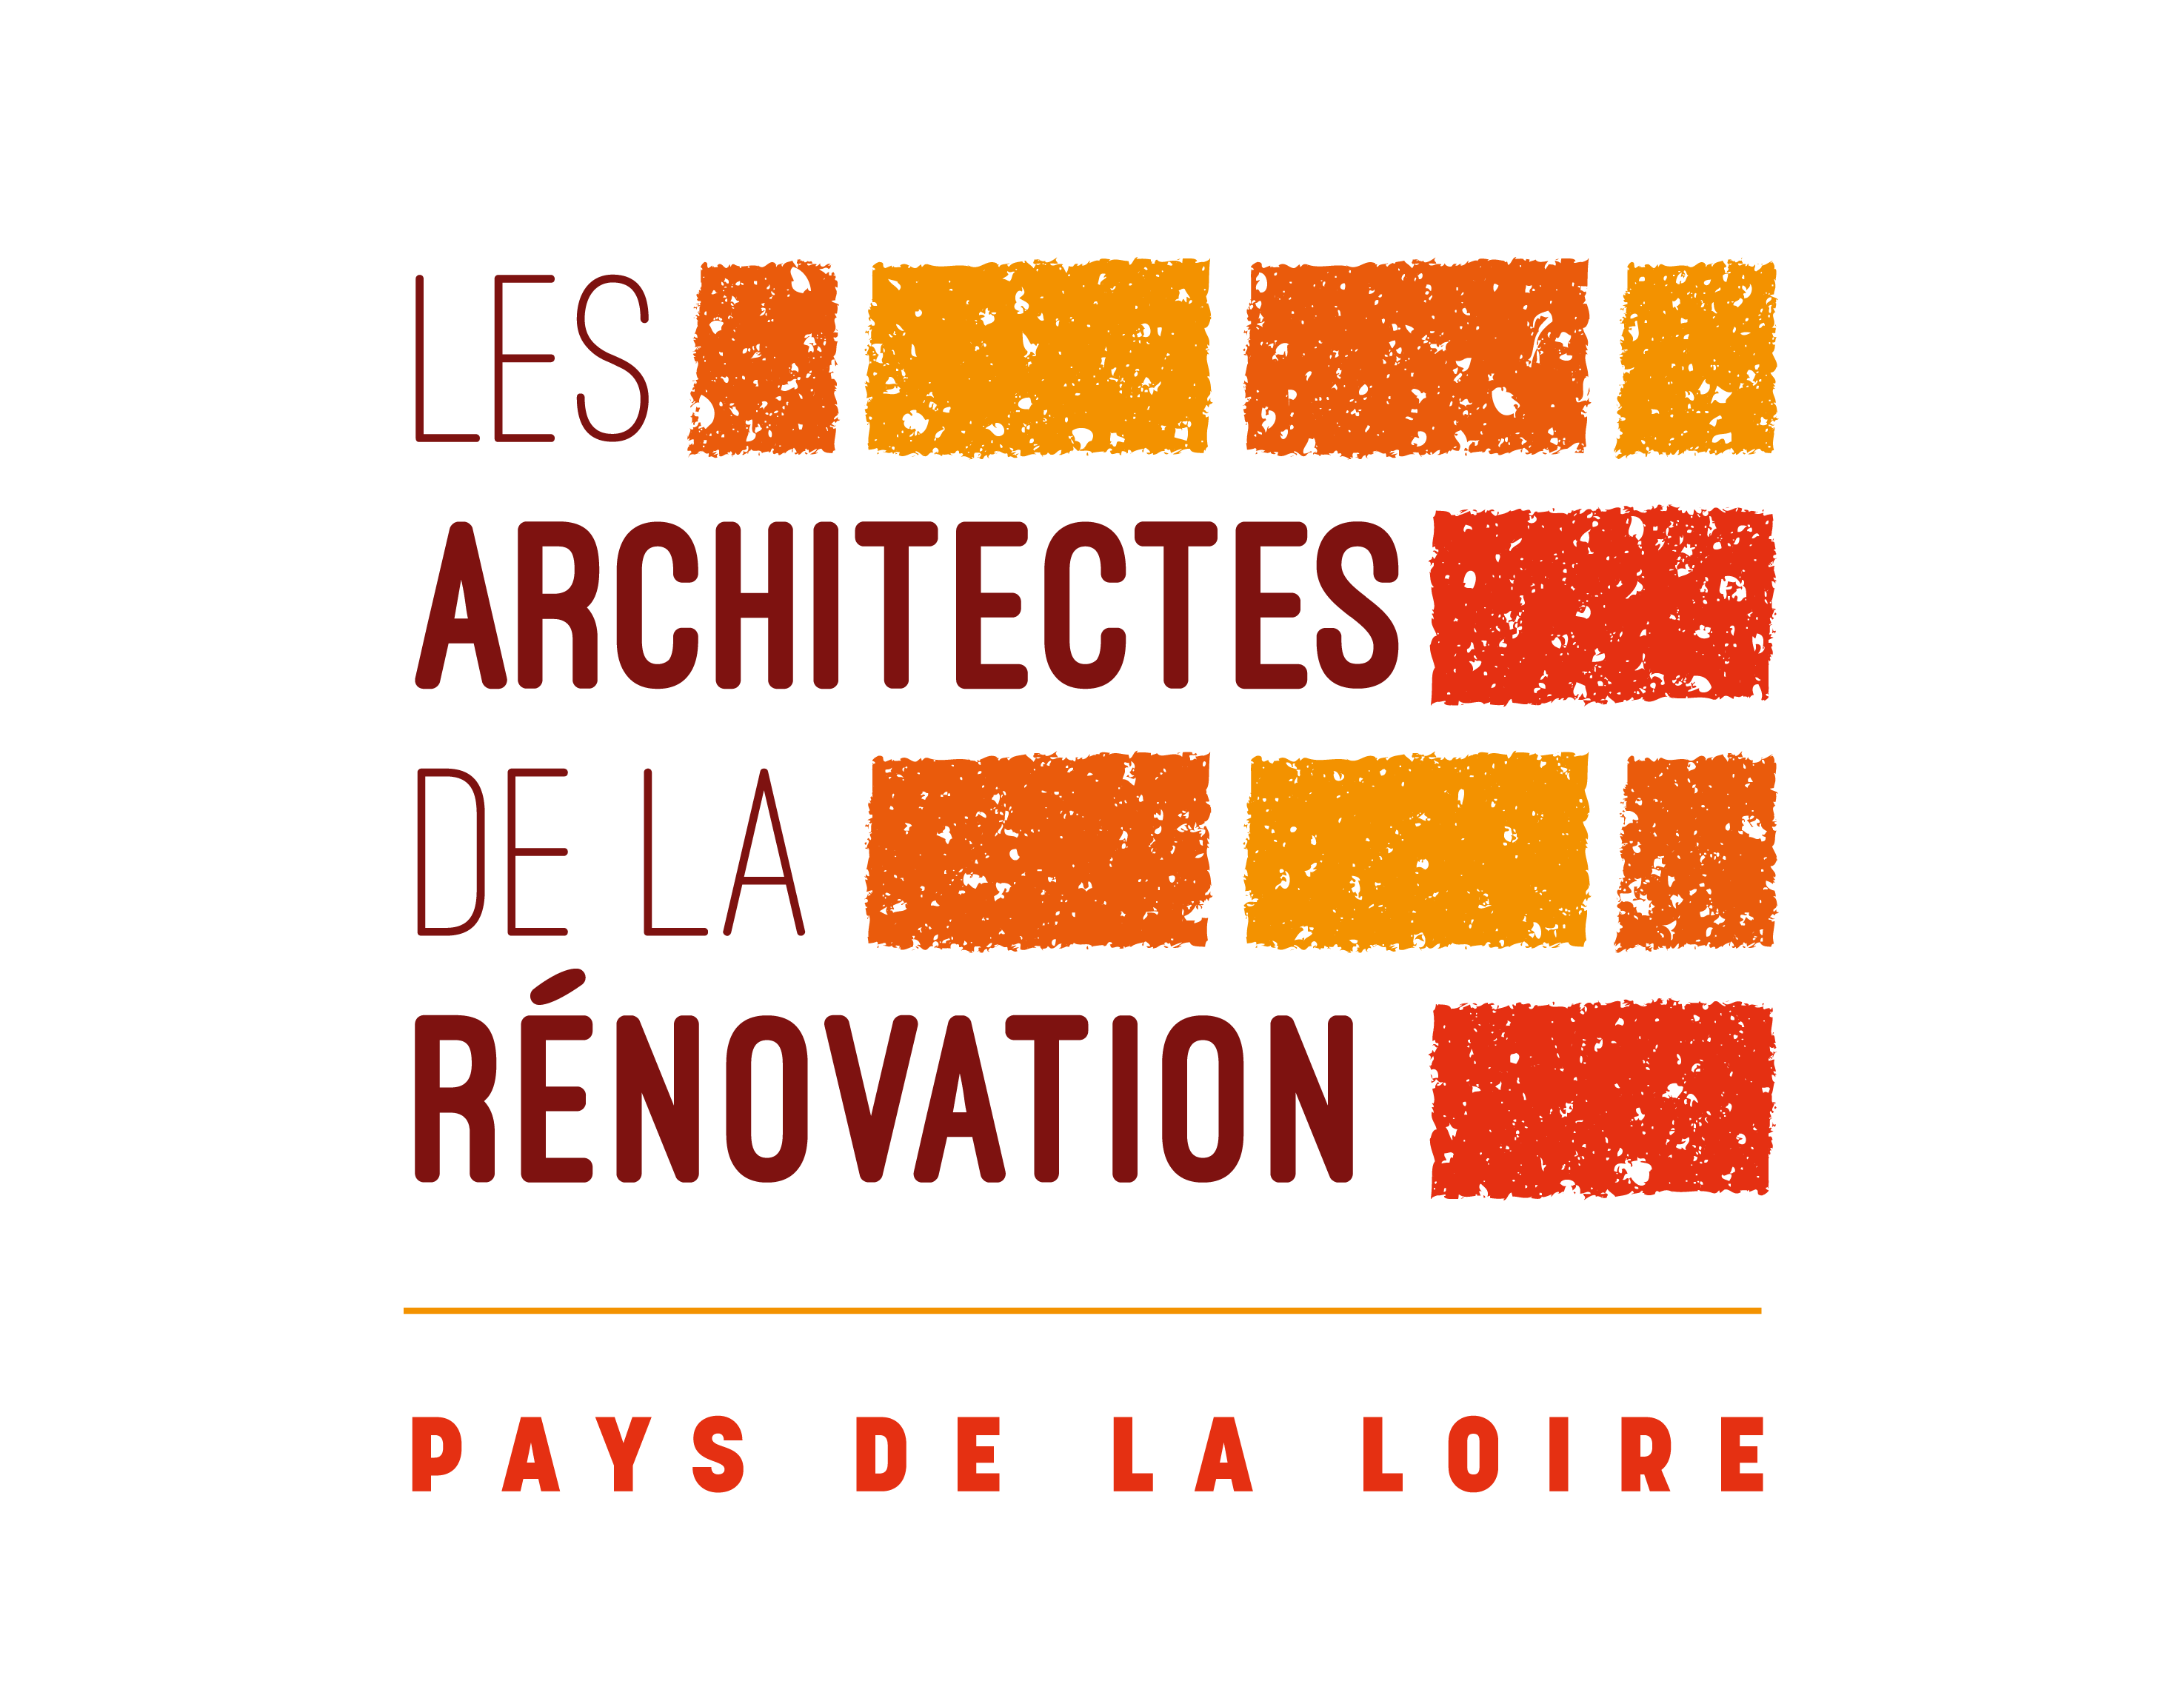 Les architectes de la rénovation